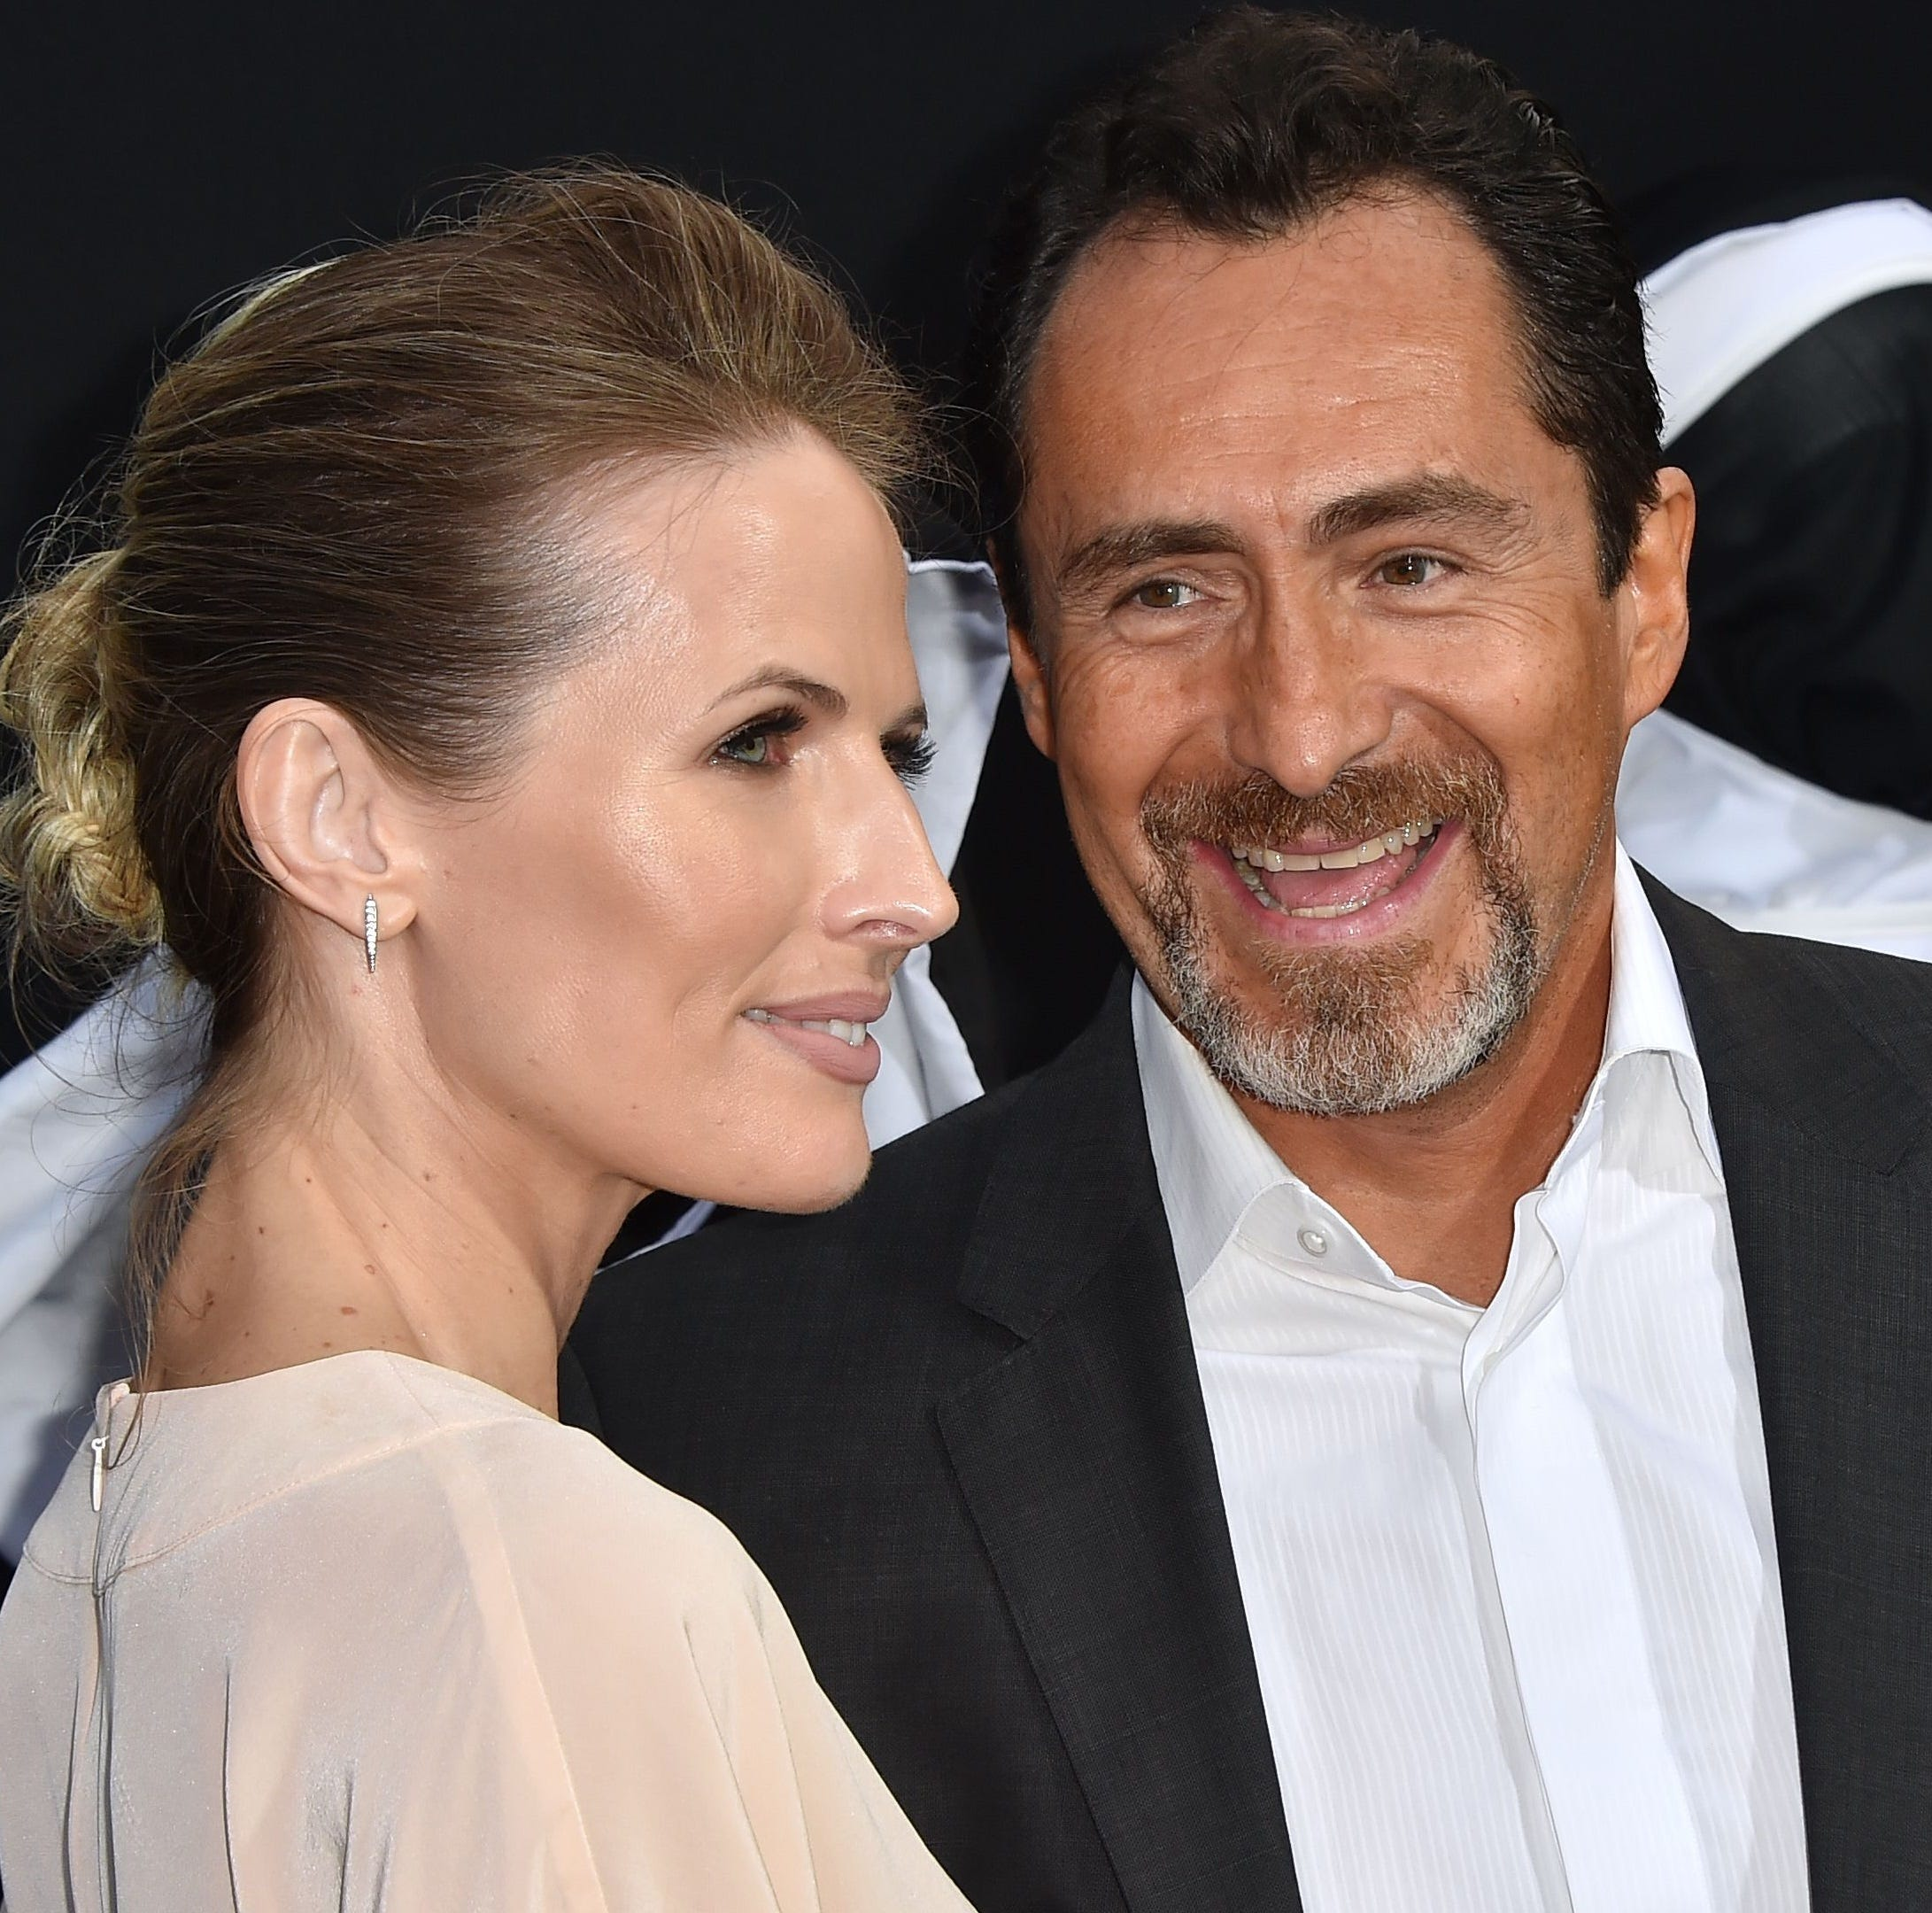 Demian Bichir announces the death of his wife in moving Instagram post